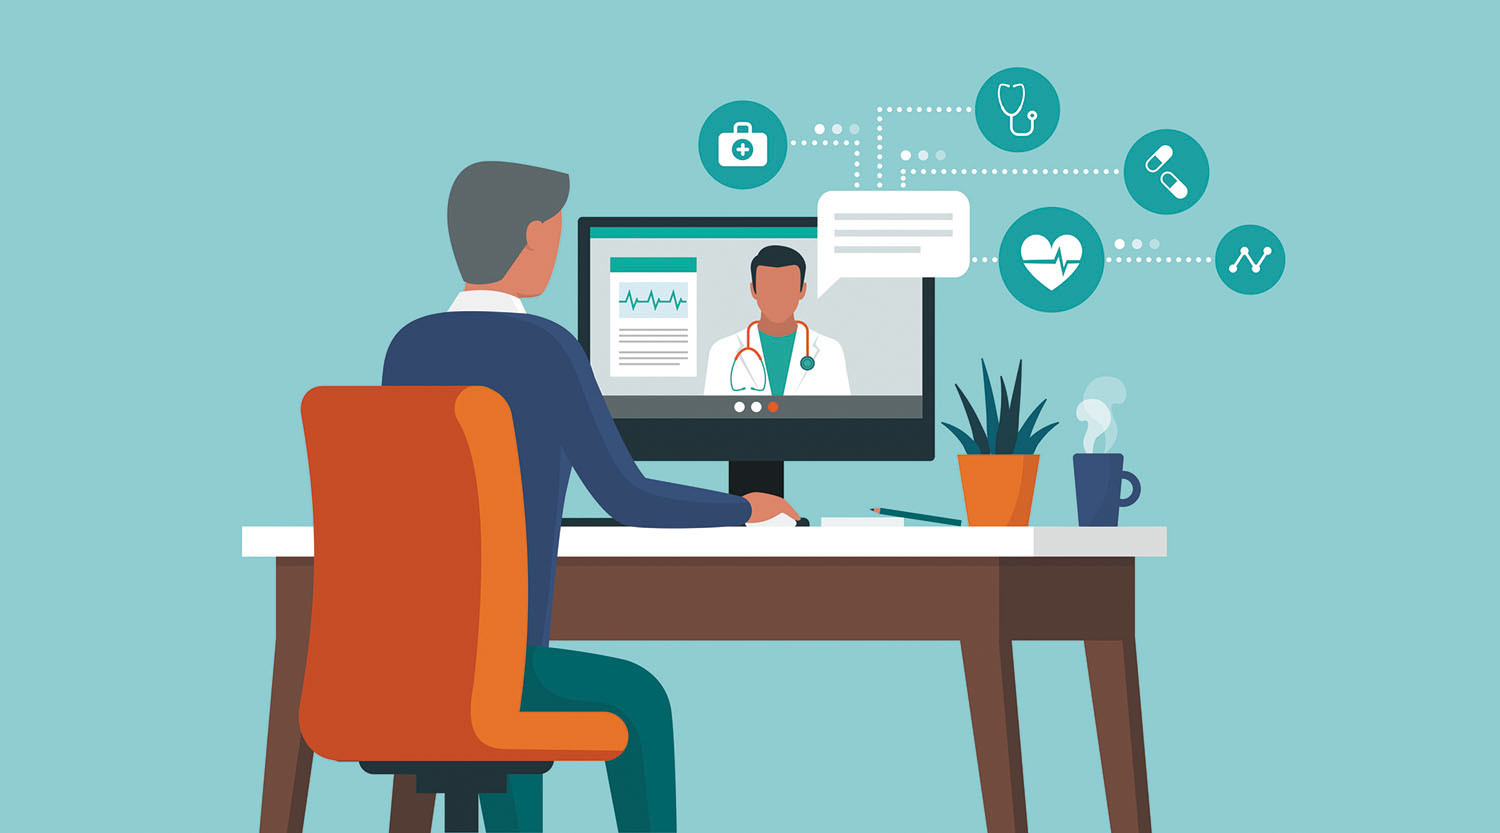 Running a medical practice isn't easy. Tobe profitable and successful, you have to be efficient while providing the best inpatient care.Luckily, technology is bringing convenience to you and your patients as well.